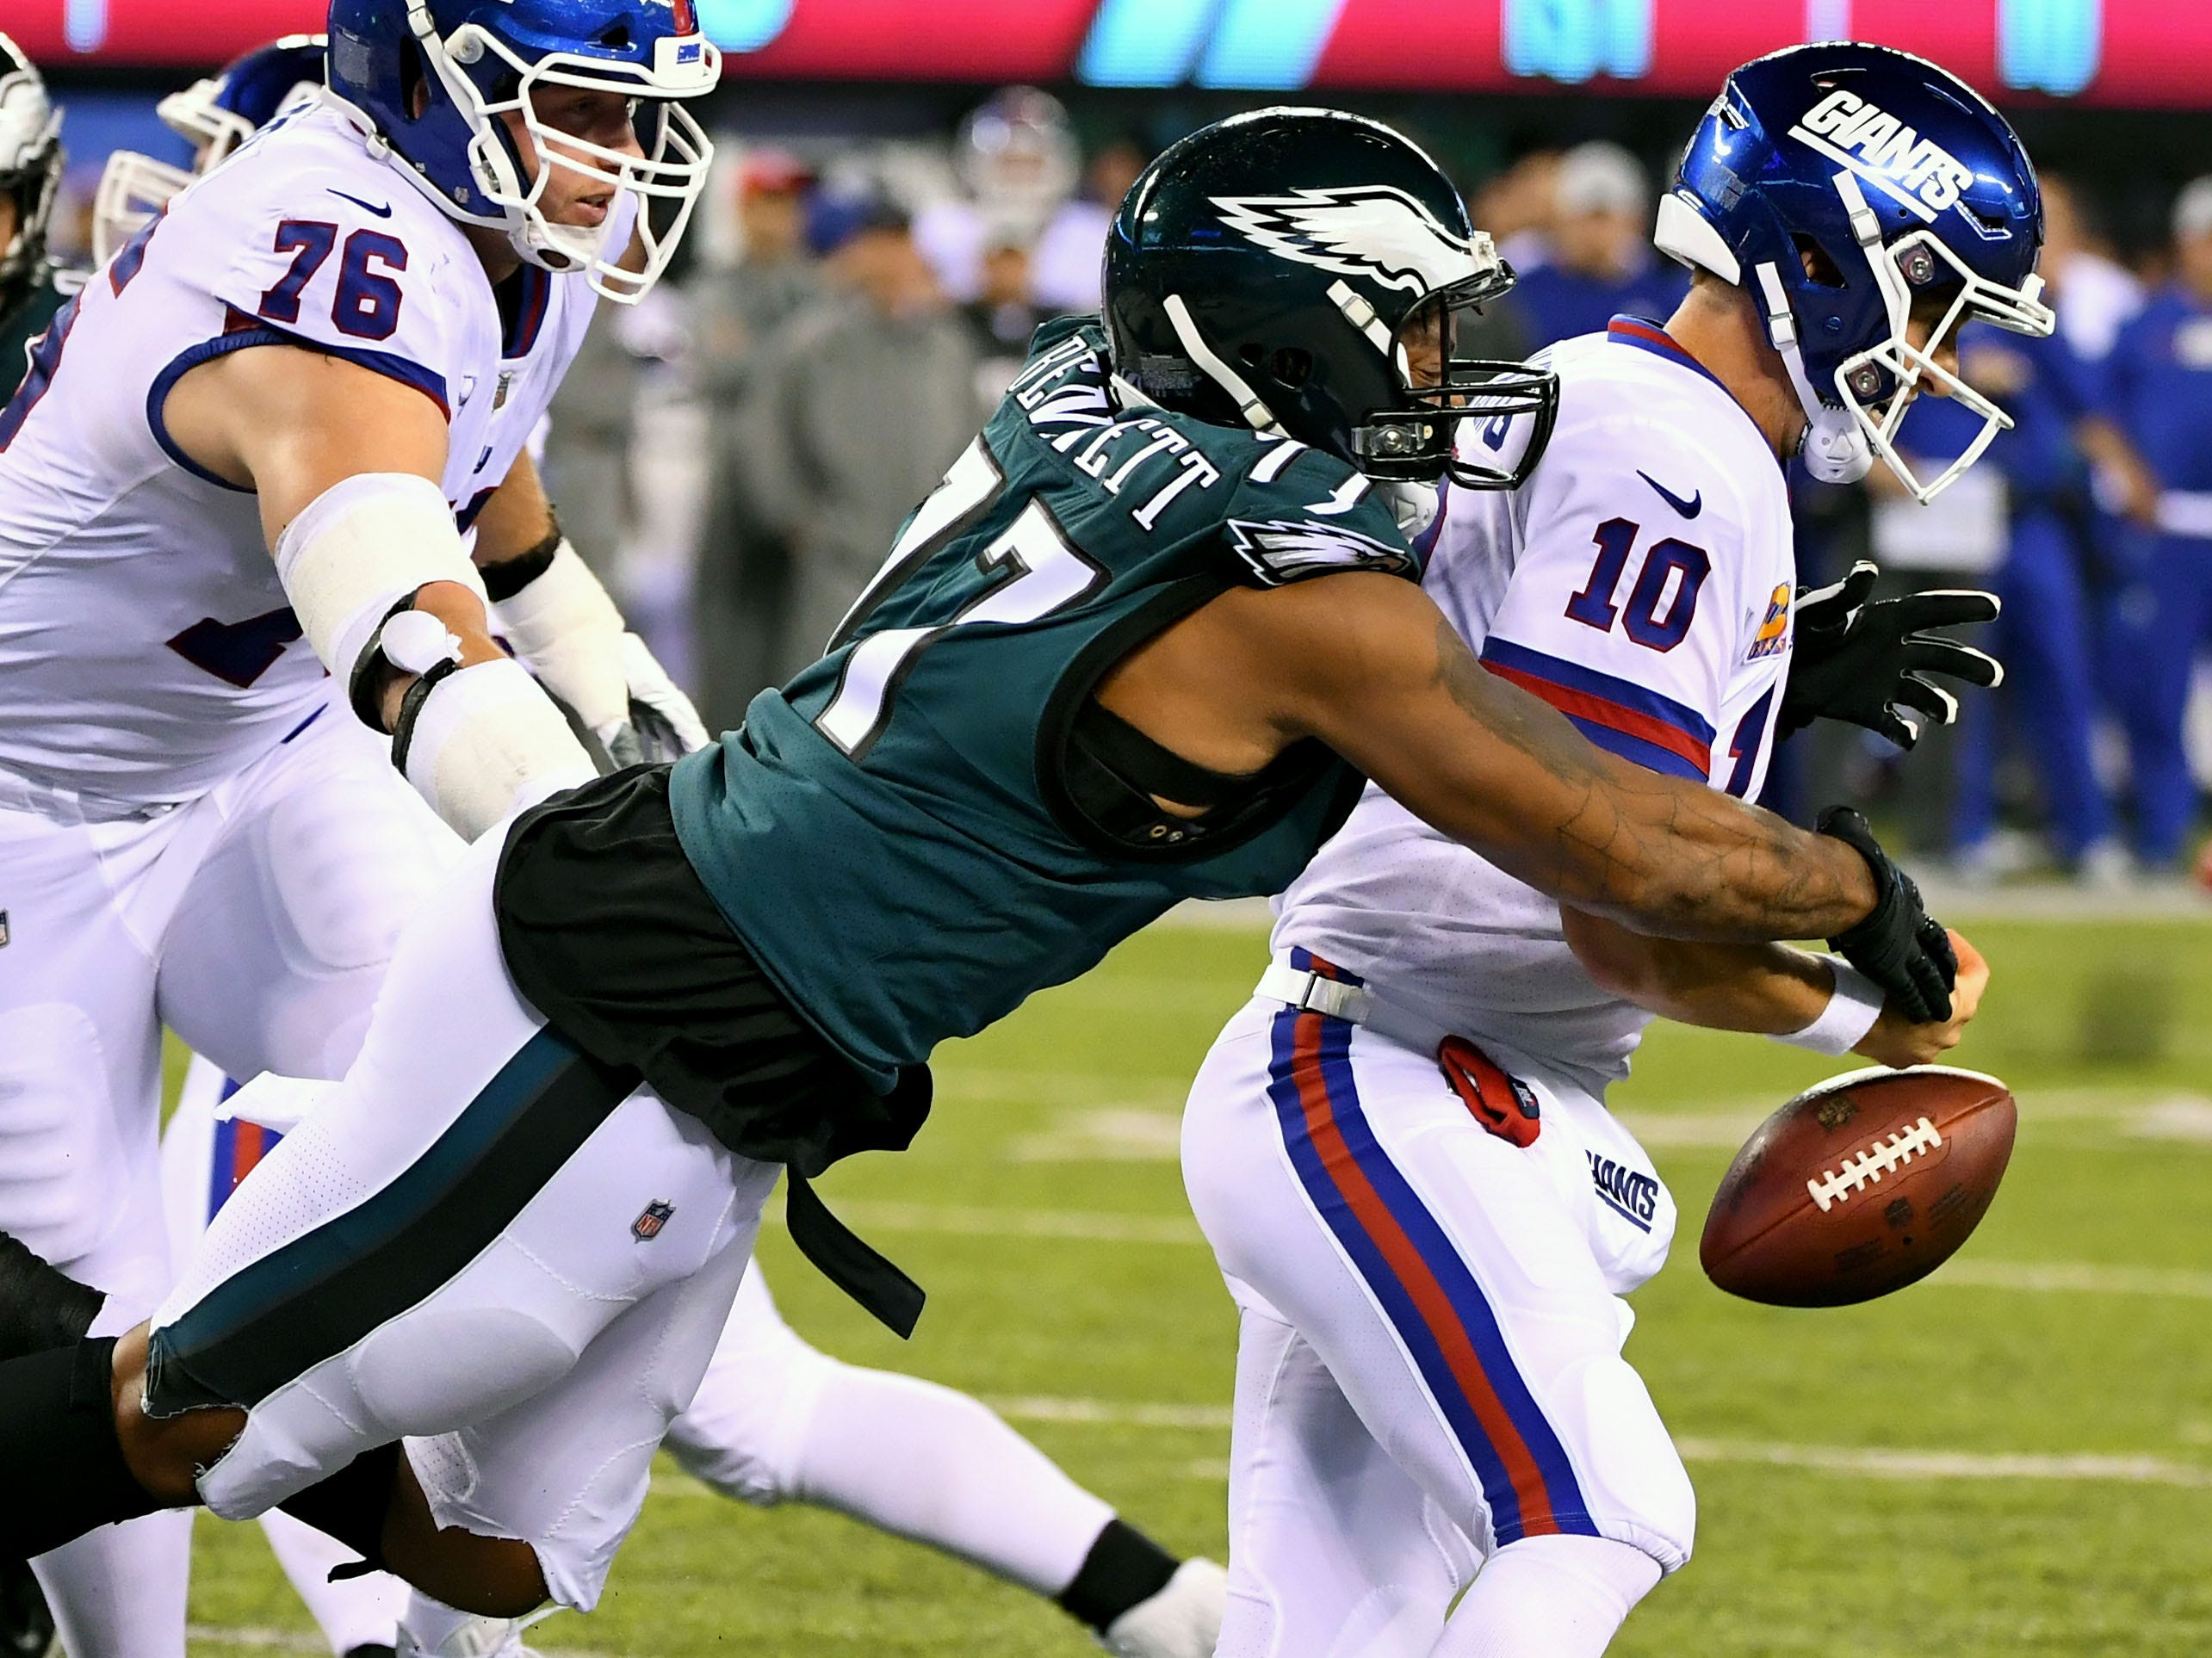 Philadelphia Eagles defensive end Michael Bennett hits New York Giants quarterback Eli Manning on the goal line forcing a fumble in the first quarter at MetLife Stadium. The Giants recovered the ball.